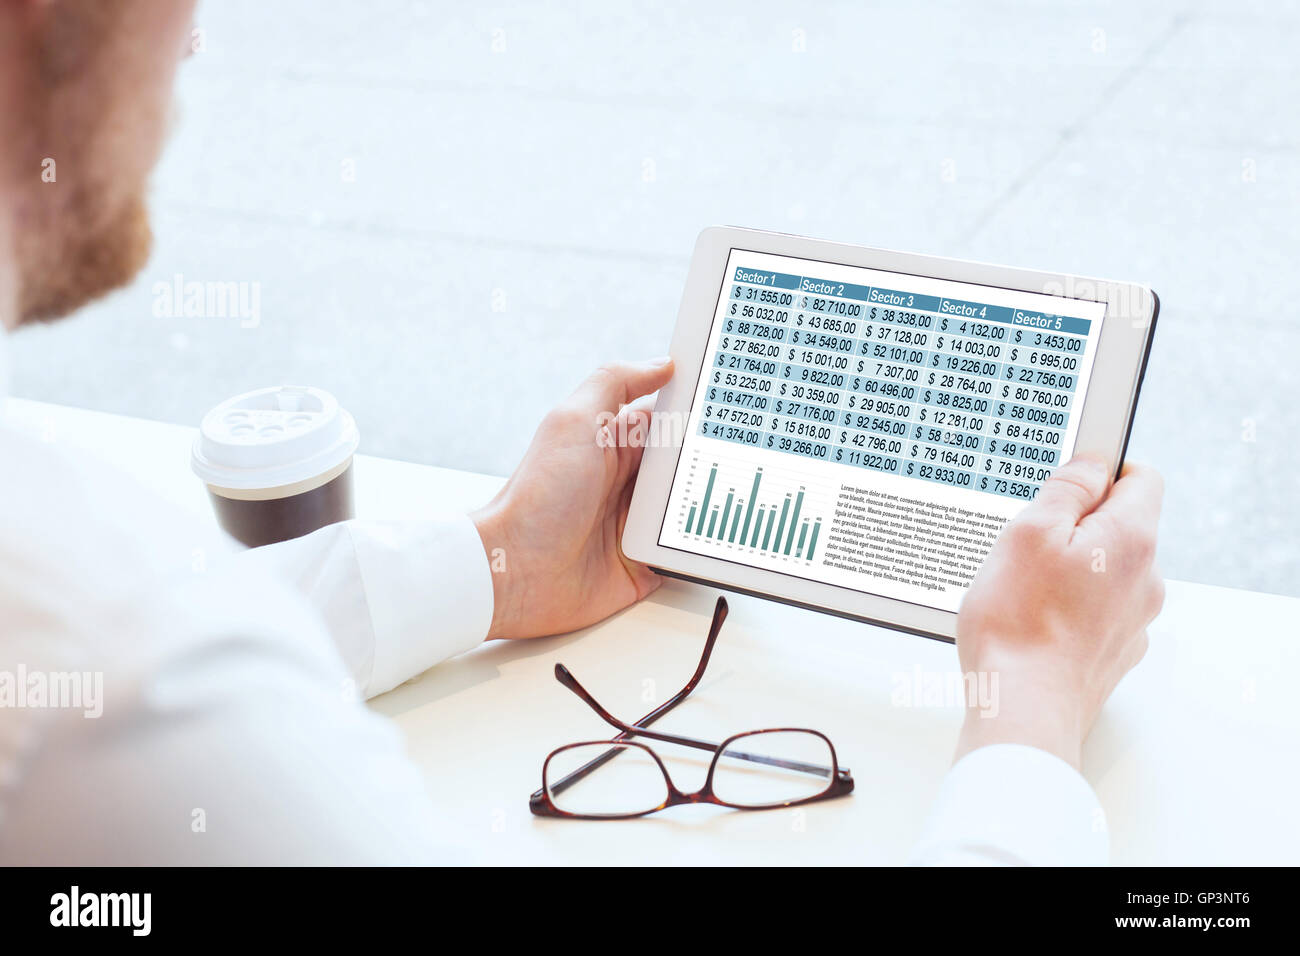 business man reading financial report on tablet - Stock Image